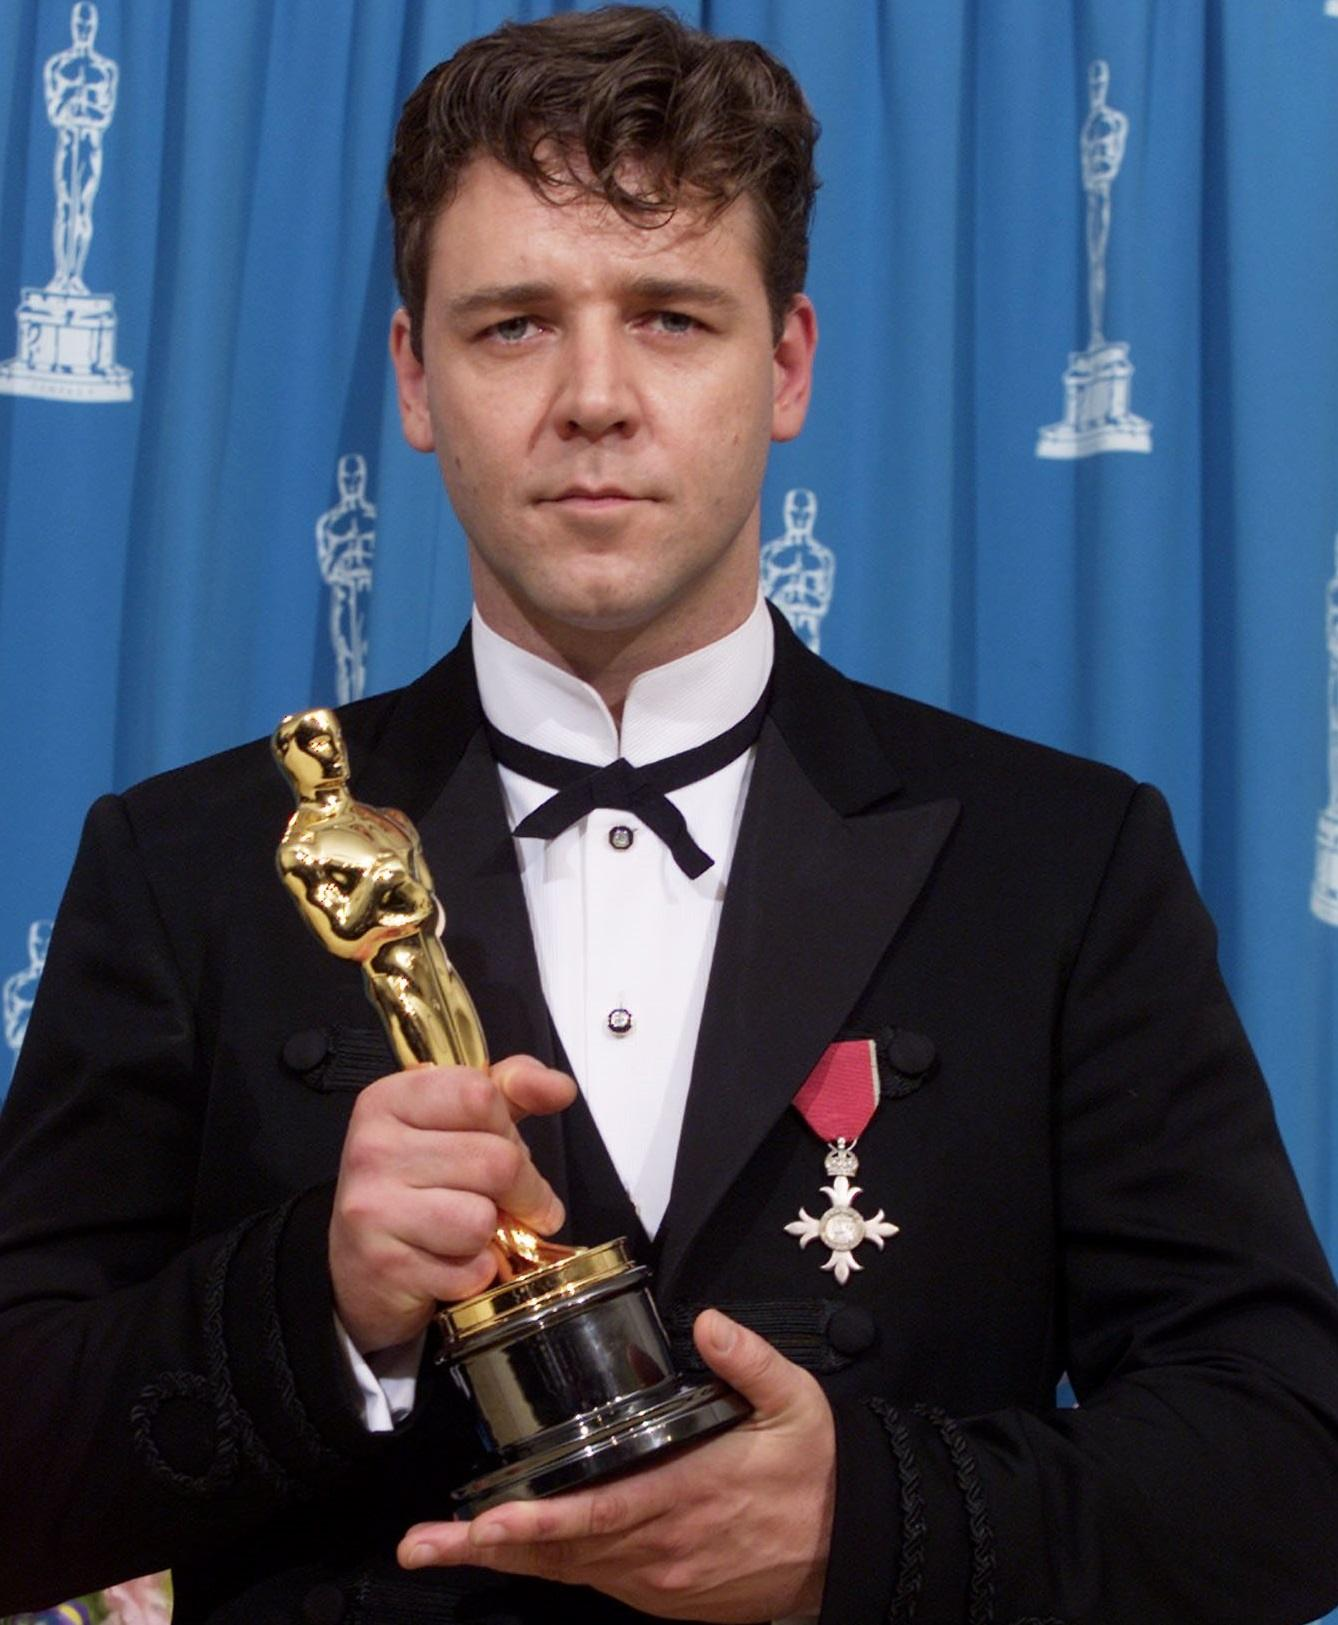 Russell Crowe Speech 10 Actors Who Seriously Injured Themselves To Win An Oscar